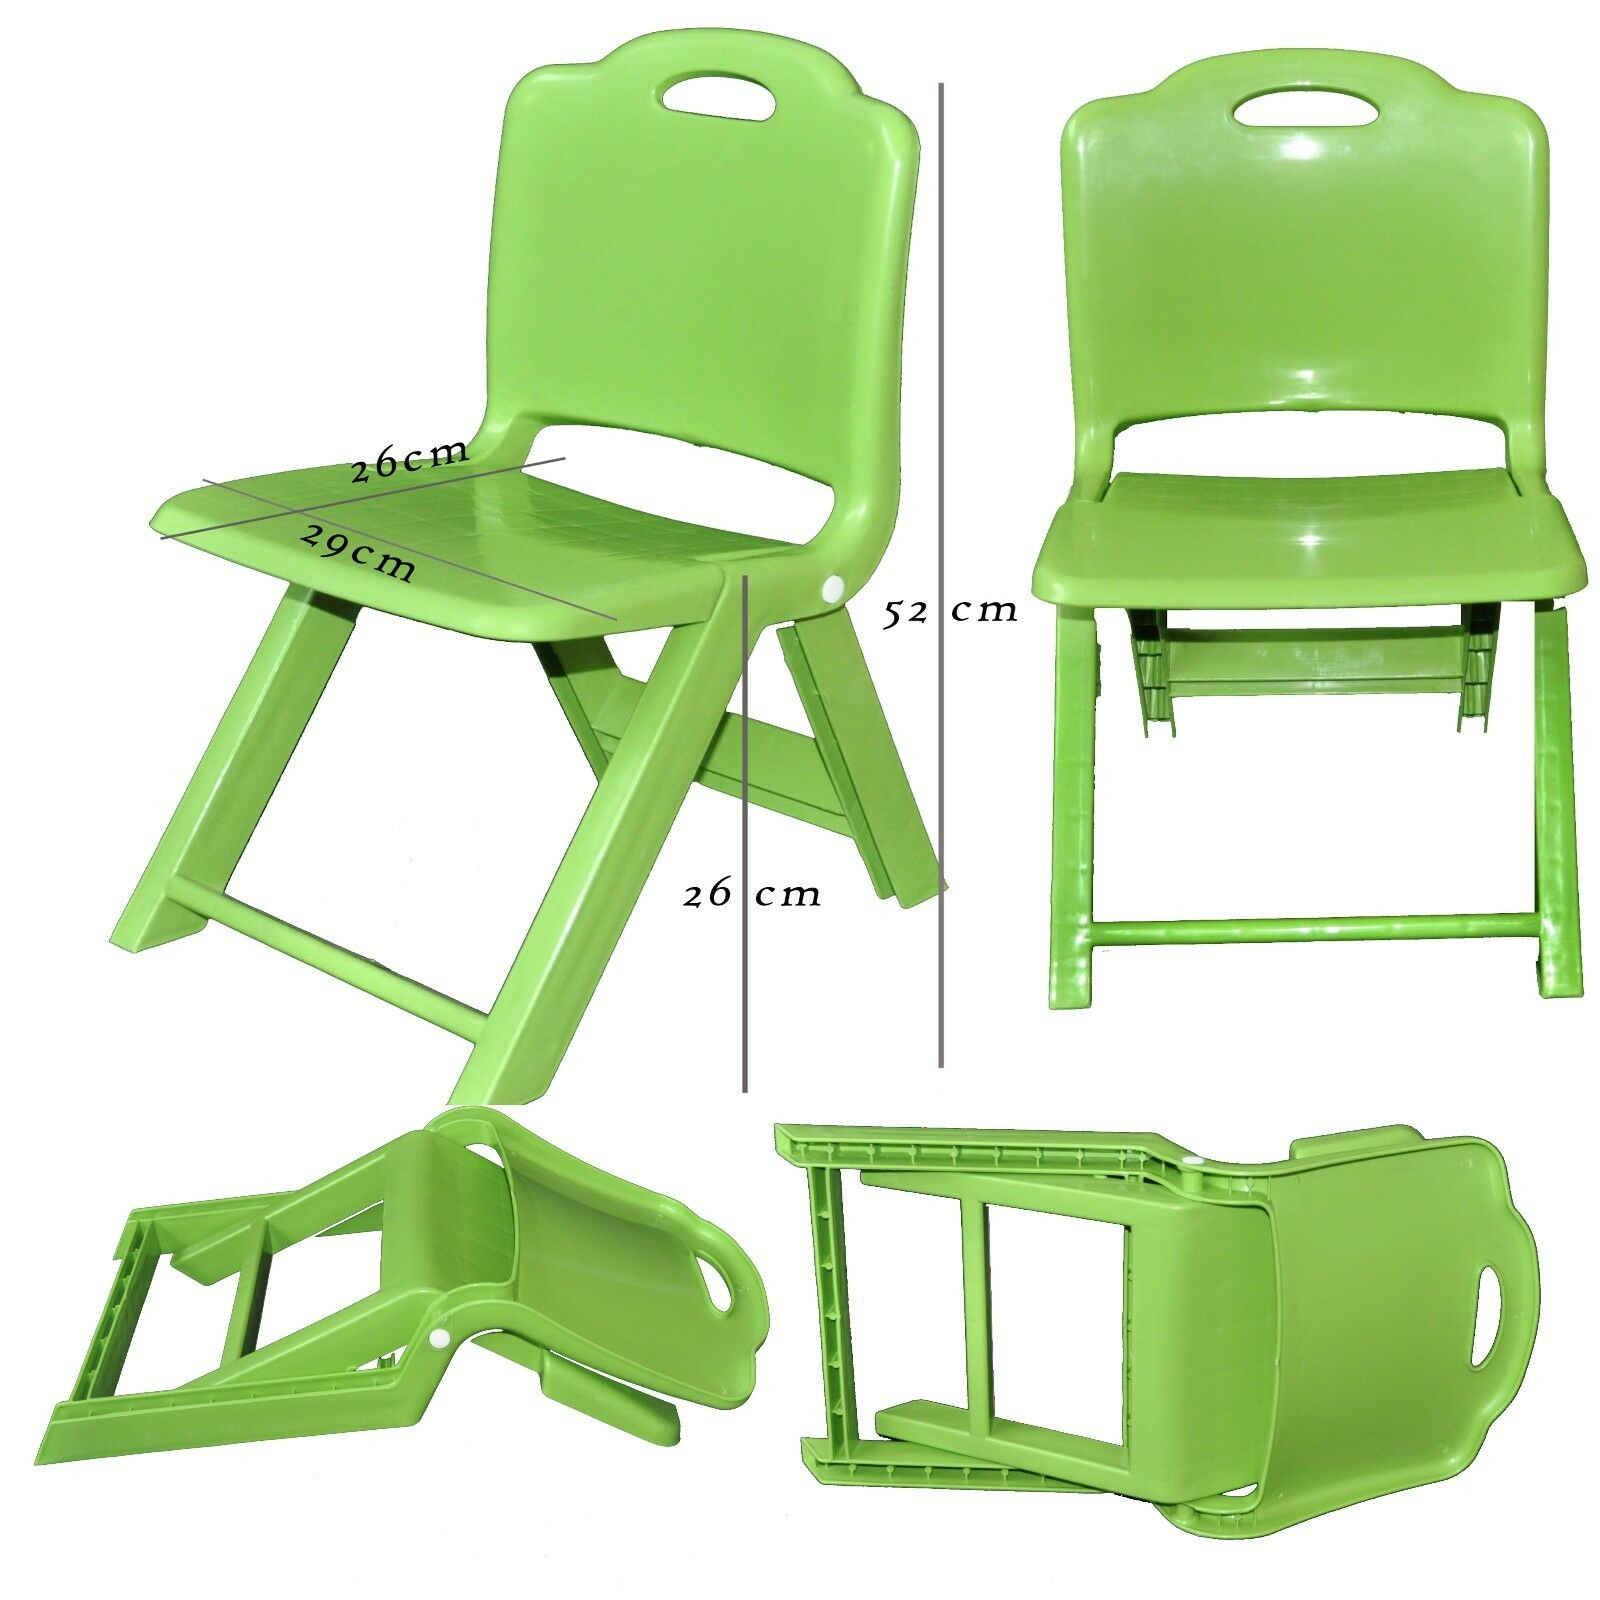 Plastic Toddler Chairs Strong Kids Children Plastic Folding Chair Home Picnic